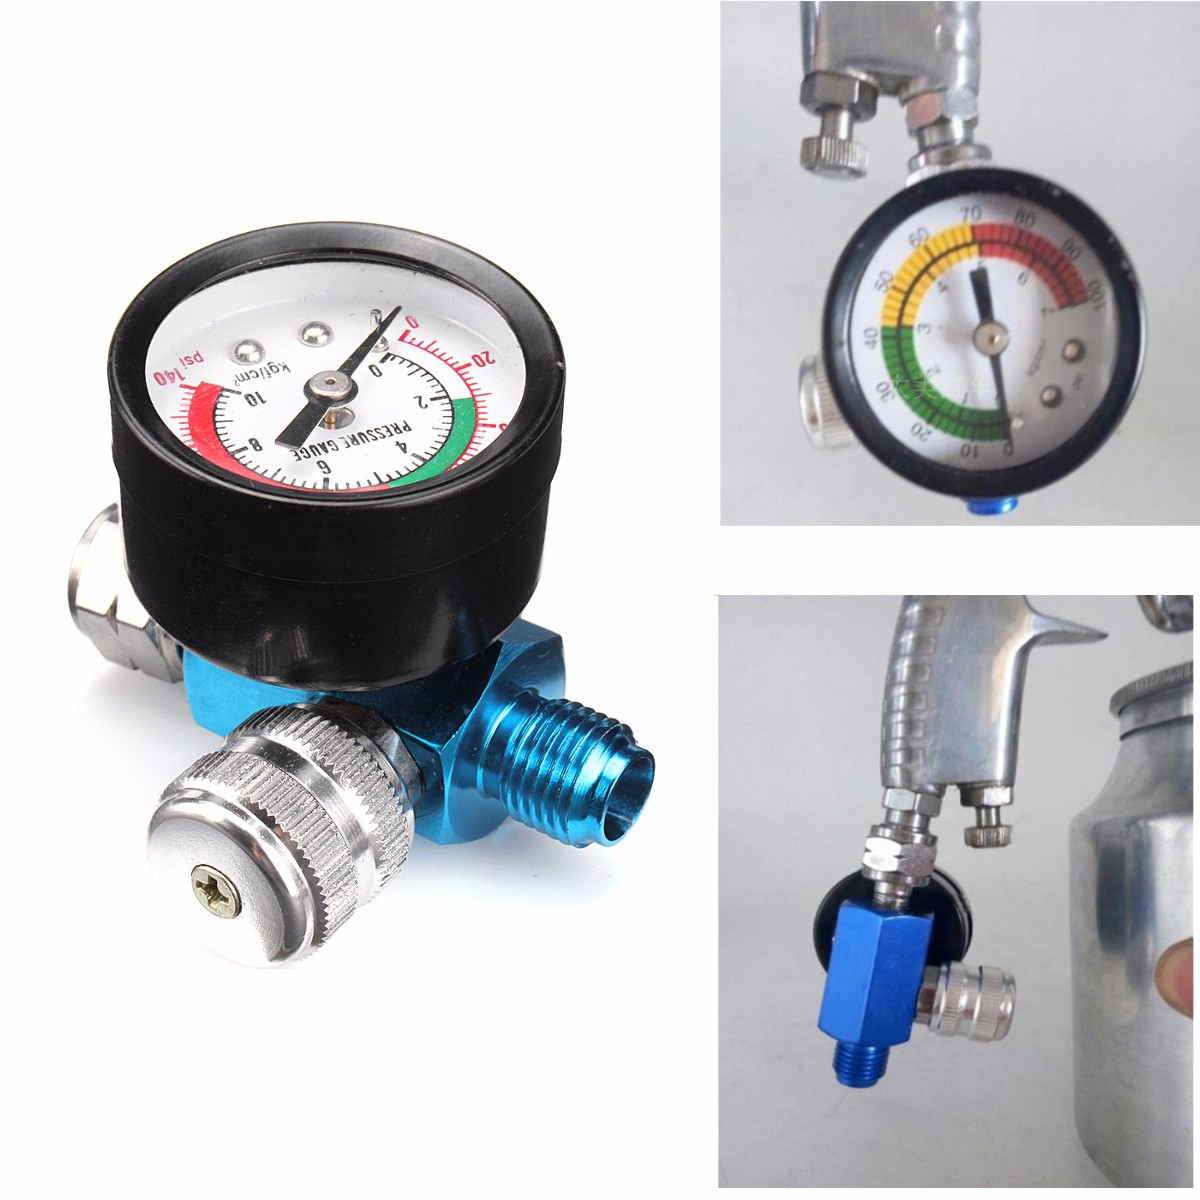 1/4 Inch Air Pressure Regulator Relief with Gauge Hose Quick Release Compressor Fitting